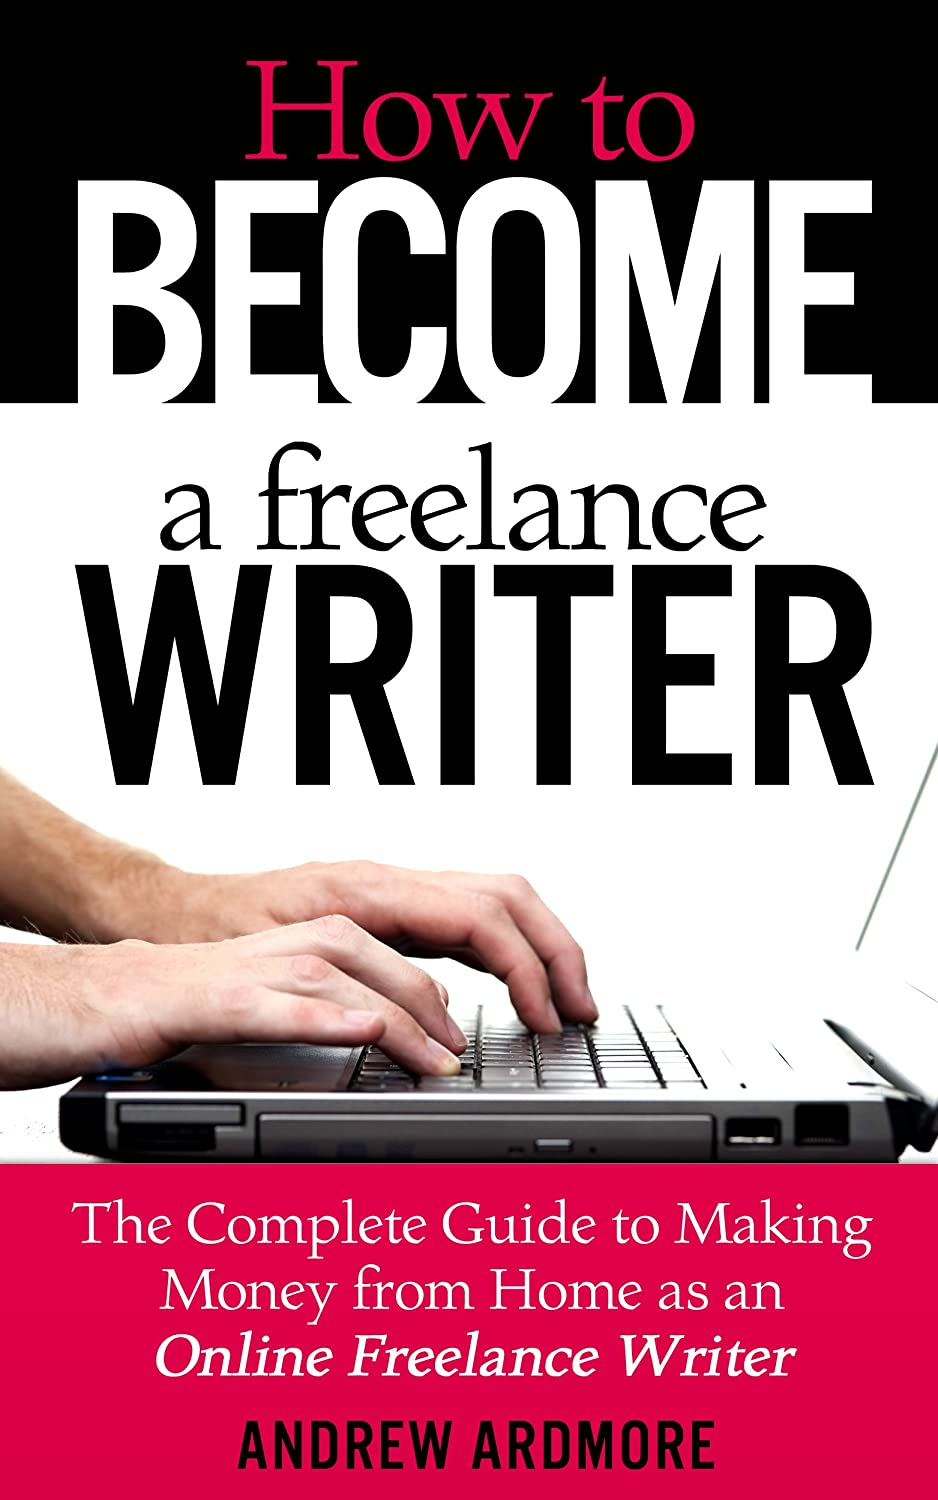 Why You Should Quit Your Job and Become a Freelance Writer Instead